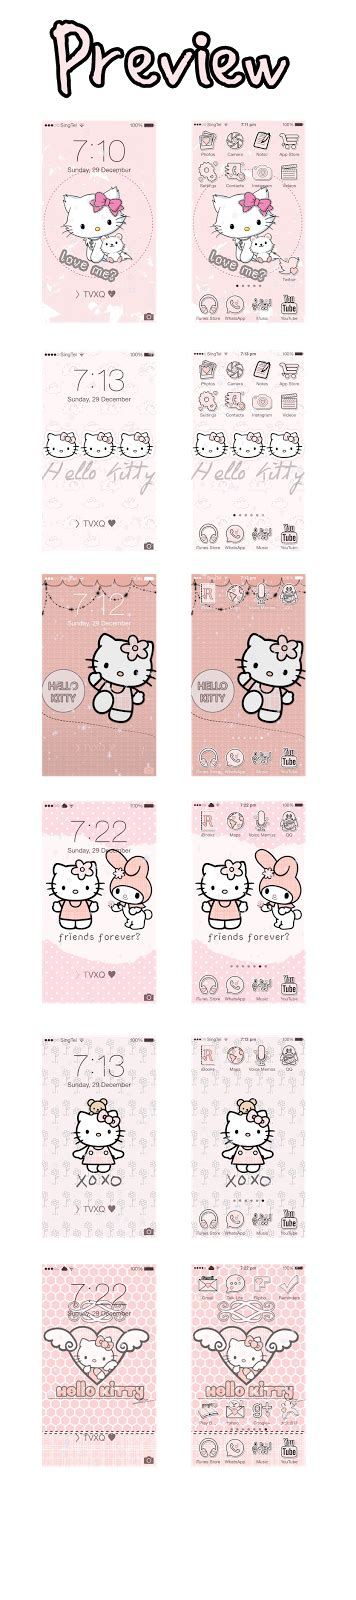 theme hello kitty cydia ios 7 hello kitty summerboard theme iphone images frompo 1